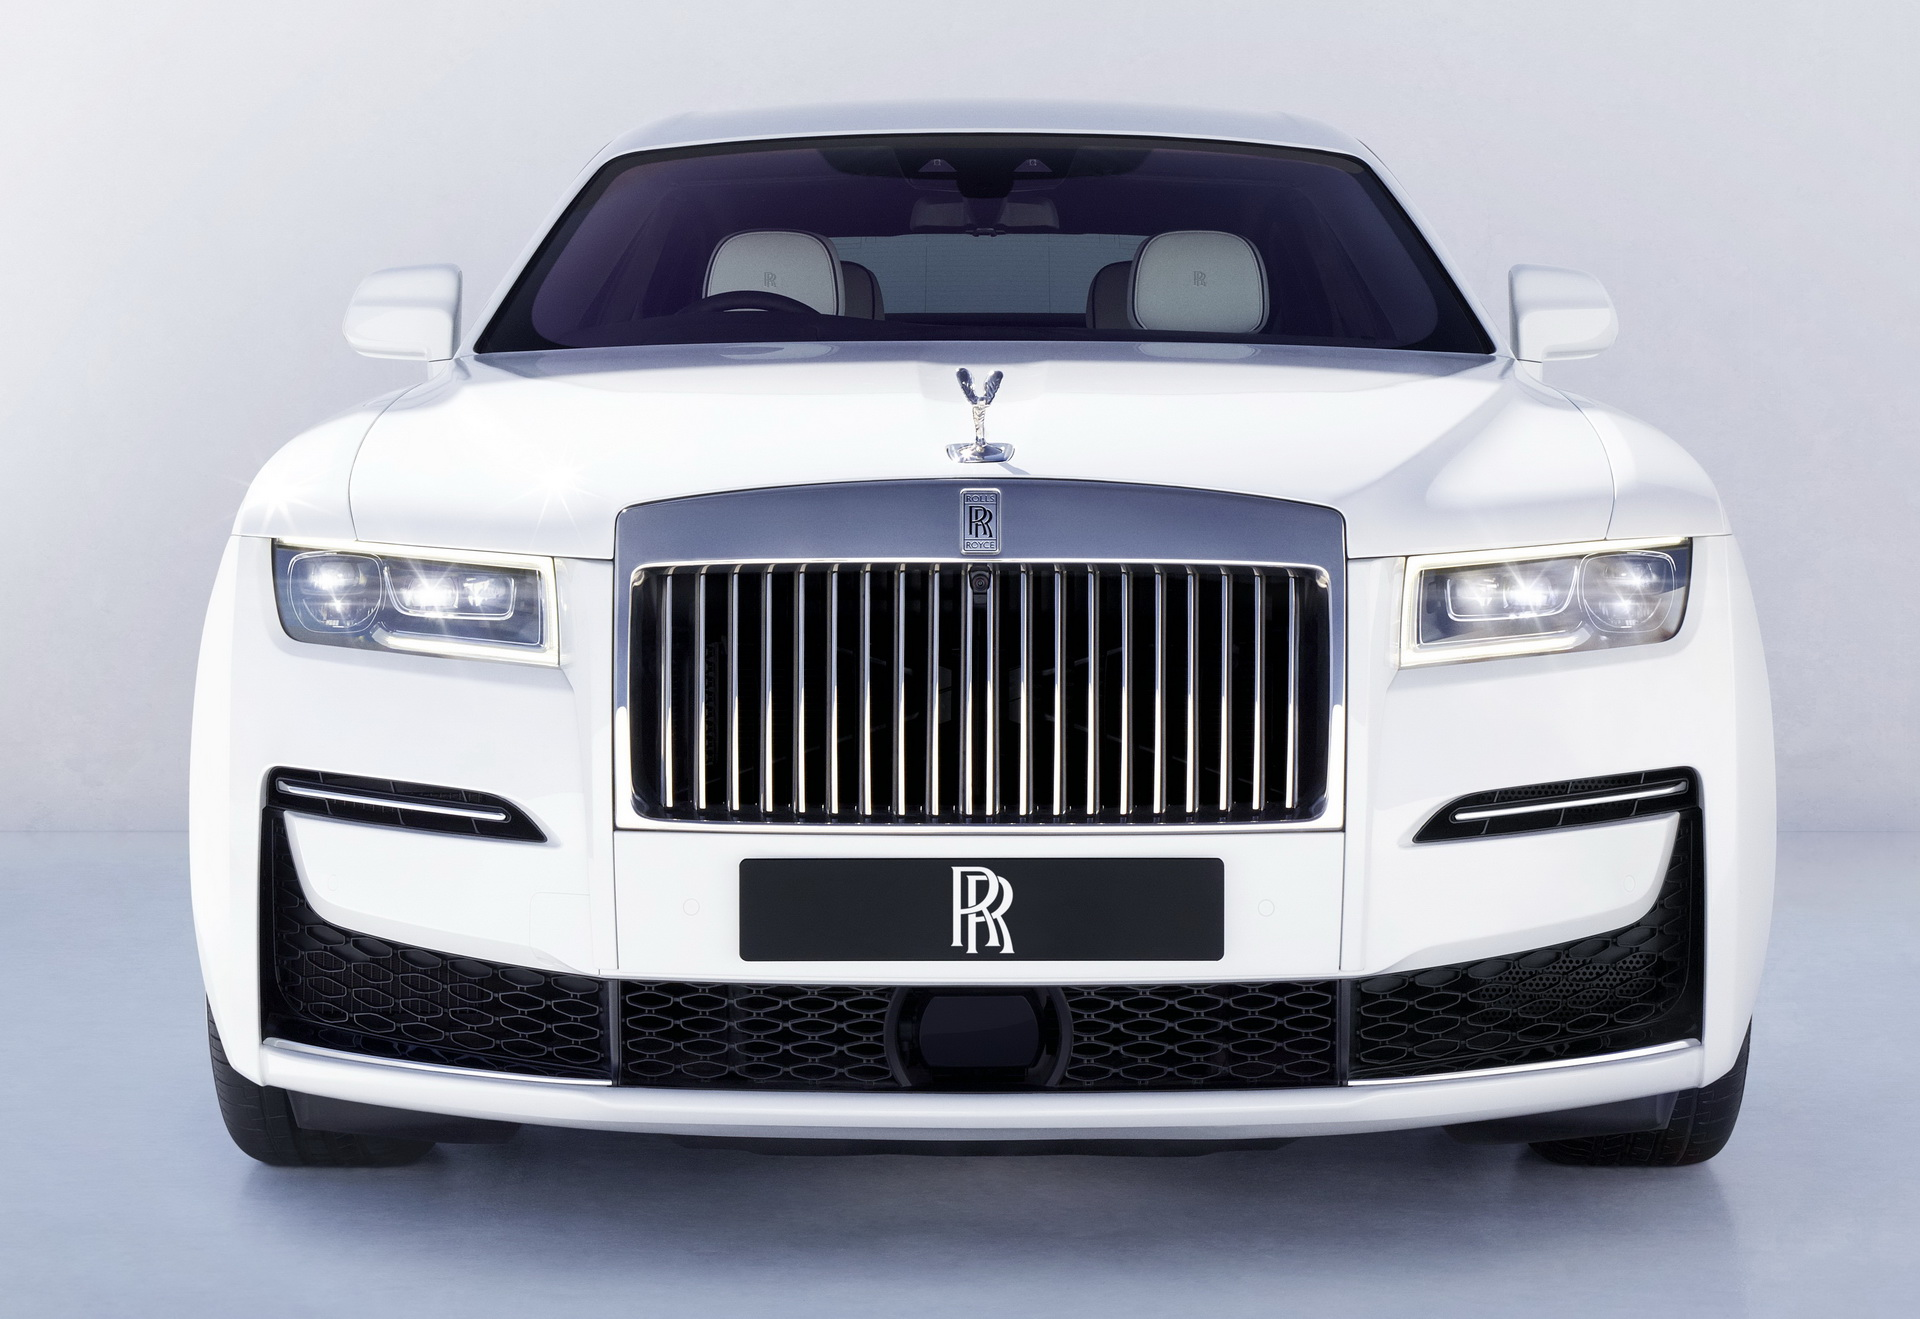 фигурка экстаза Rolls-Royce Ghost 2021